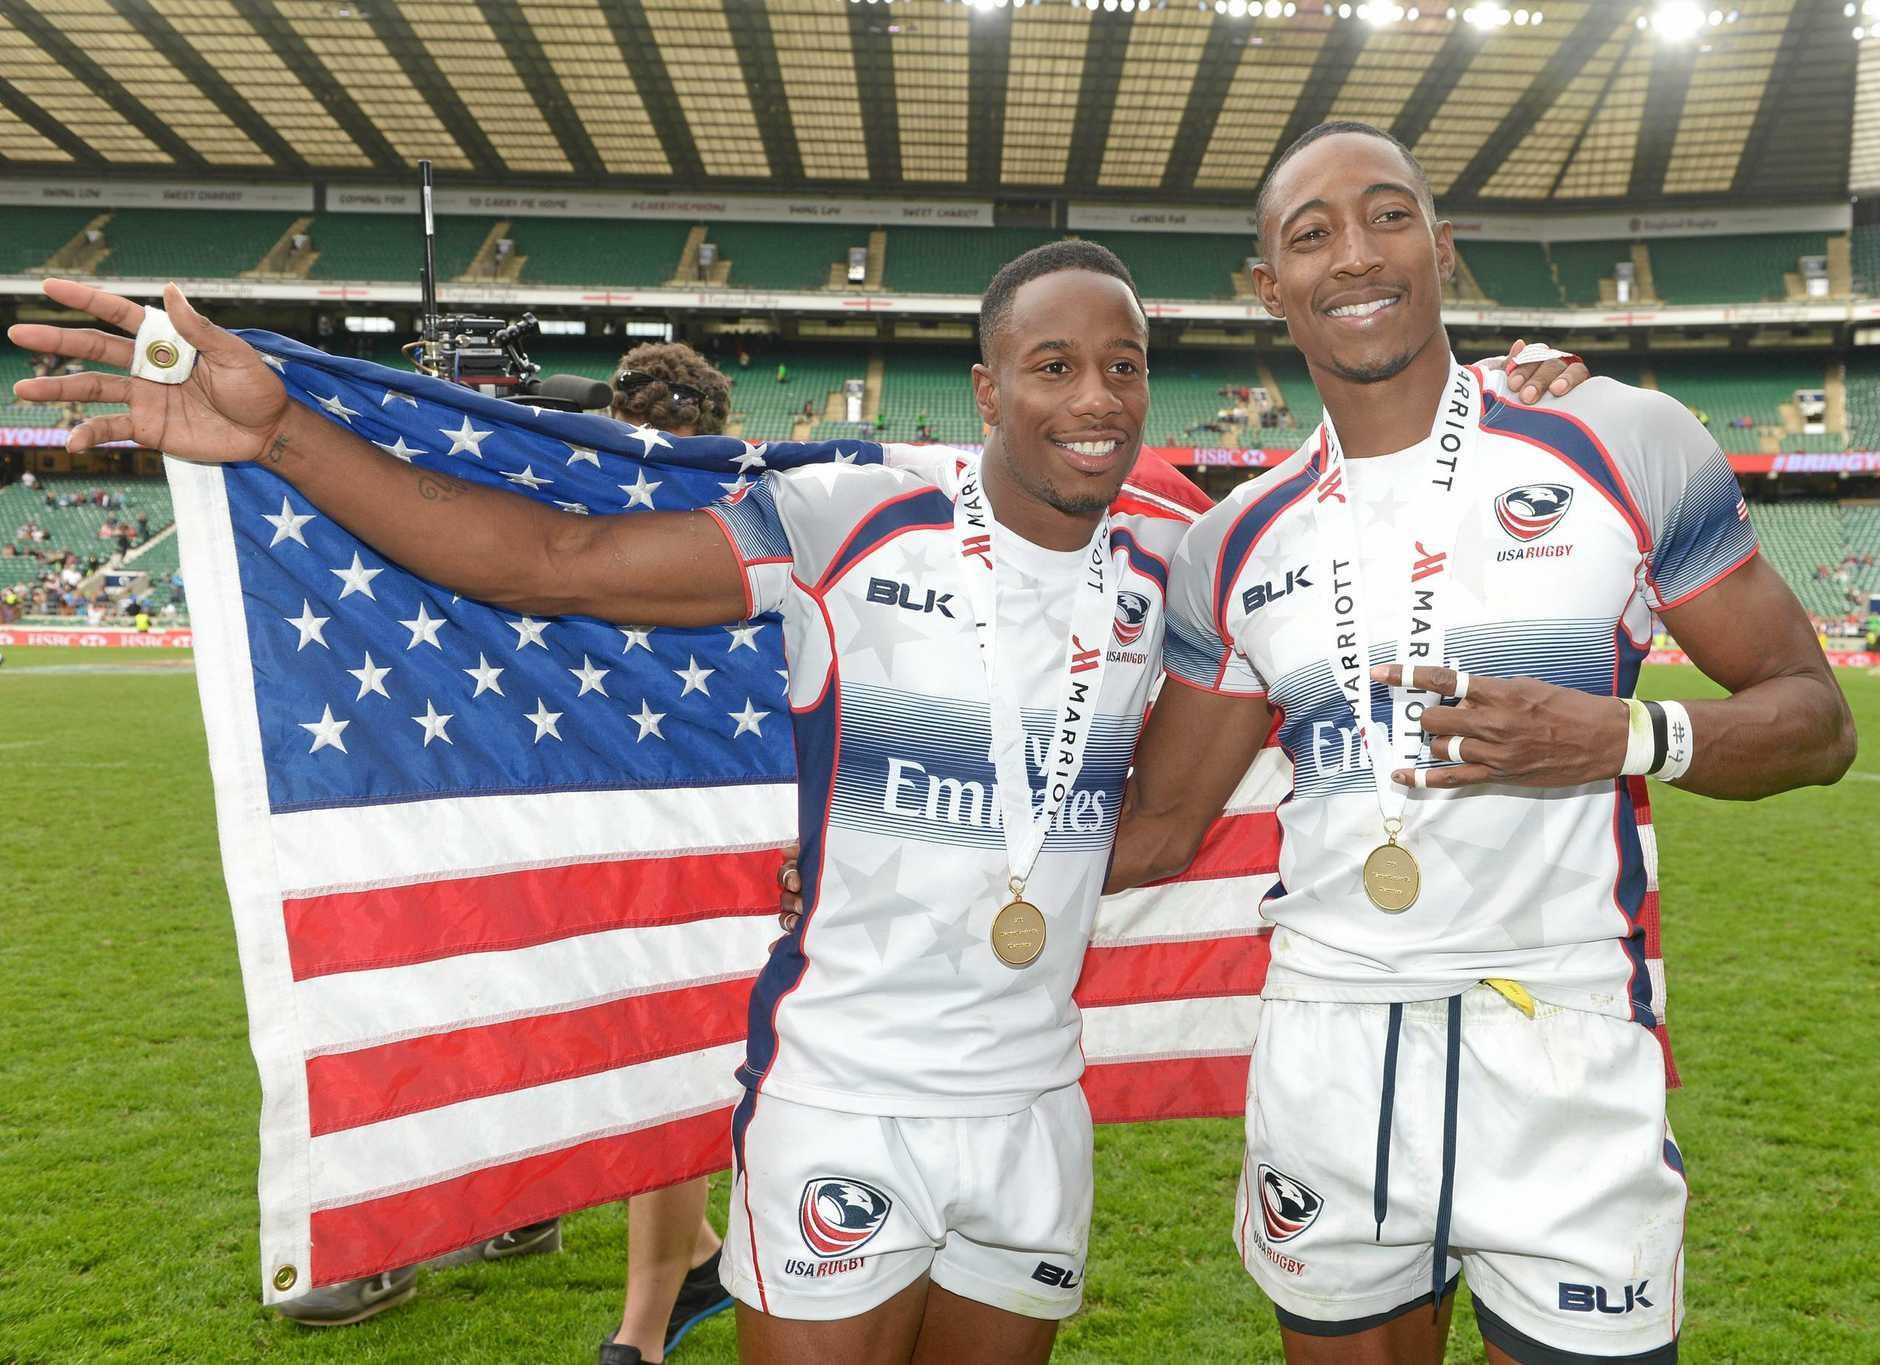 United States of America's Carlin Isles (left) and Perry Baker (right) who are also members of the USA Olympic Sprint team celebrate winning the London Sevens rugby tournament at Twickenham Stadium, London, Sunday May 17, 2015.  USA beat Australia 45-22 in the Cup final of the Marriott London Sevens to lift their first-ever Cup title. (Adam Davy / PA via AP) UNITED KINGDOM OUT - NO SALES - NO ARCHIVES